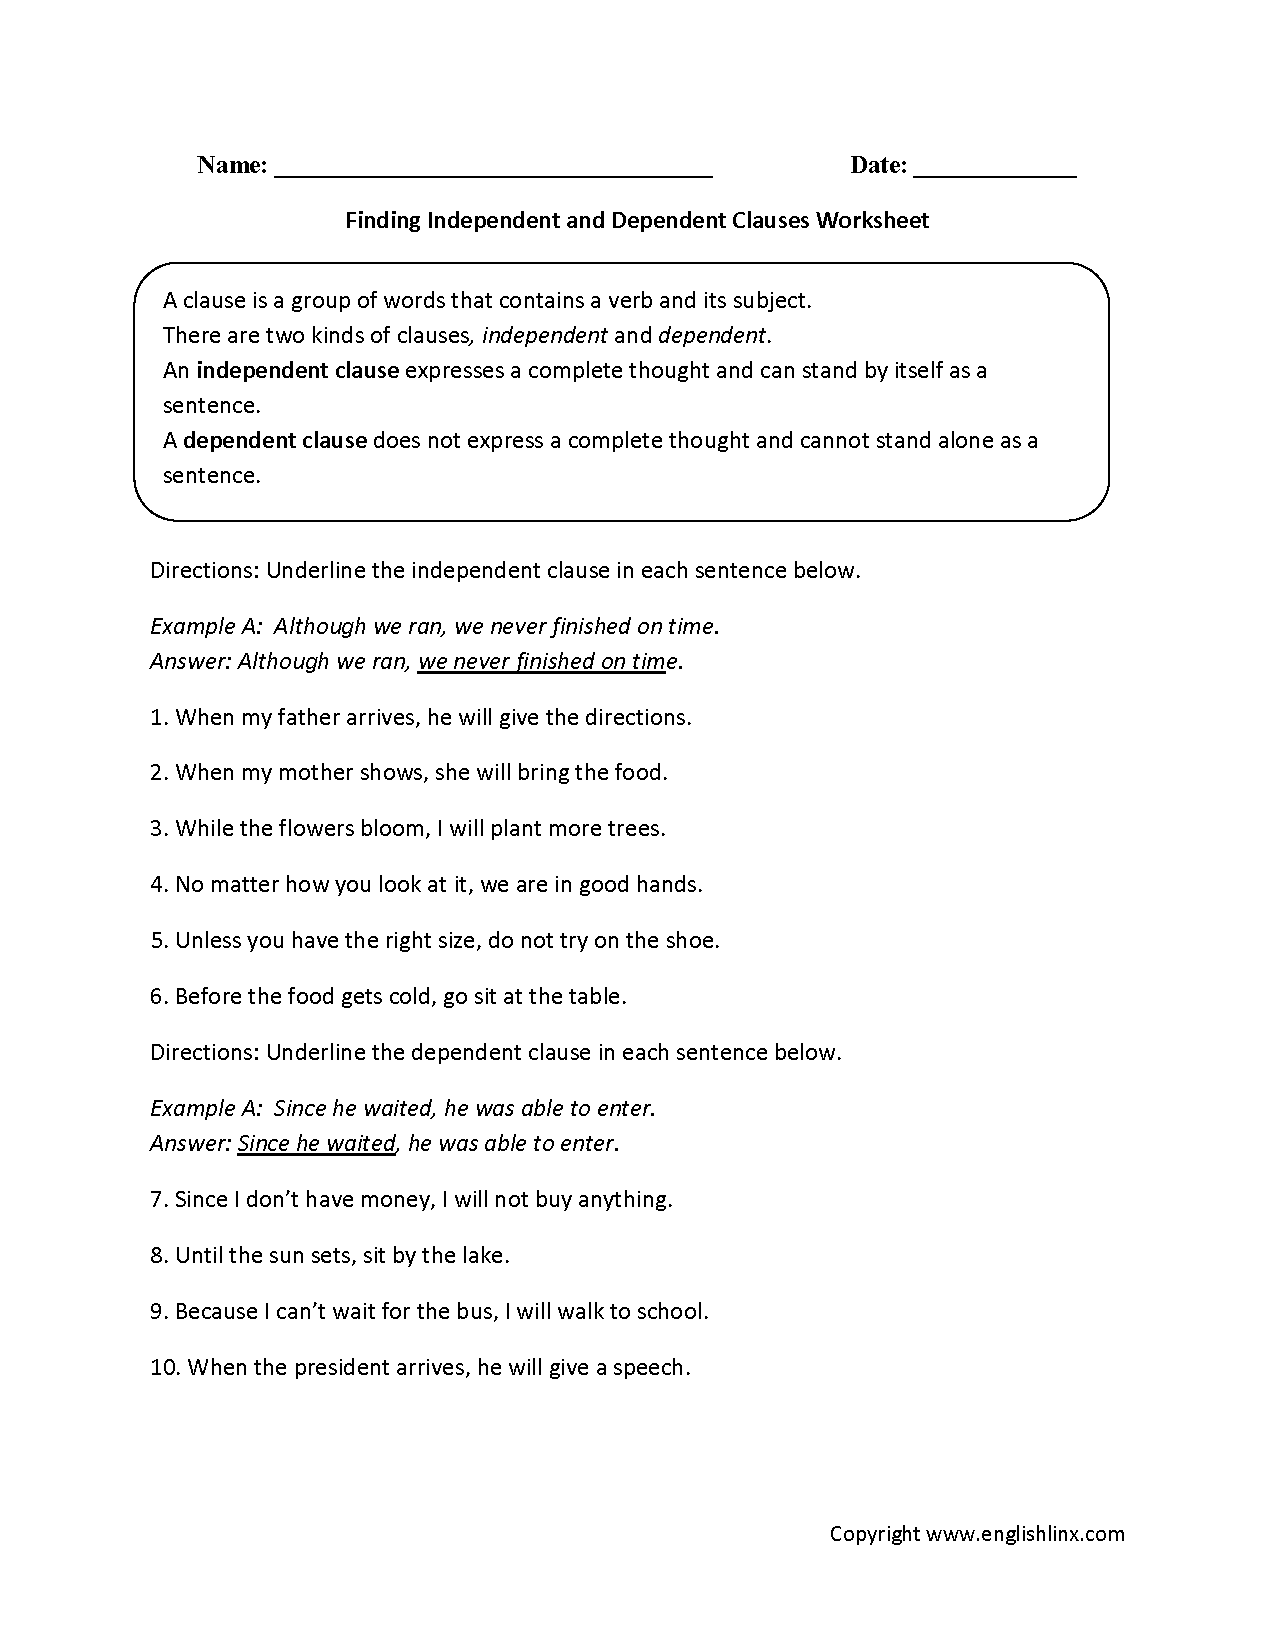 Worksheets Clauses And Phrases Worksheets finding independent and dependent clauses worksheet education pinterest clause worksheets language